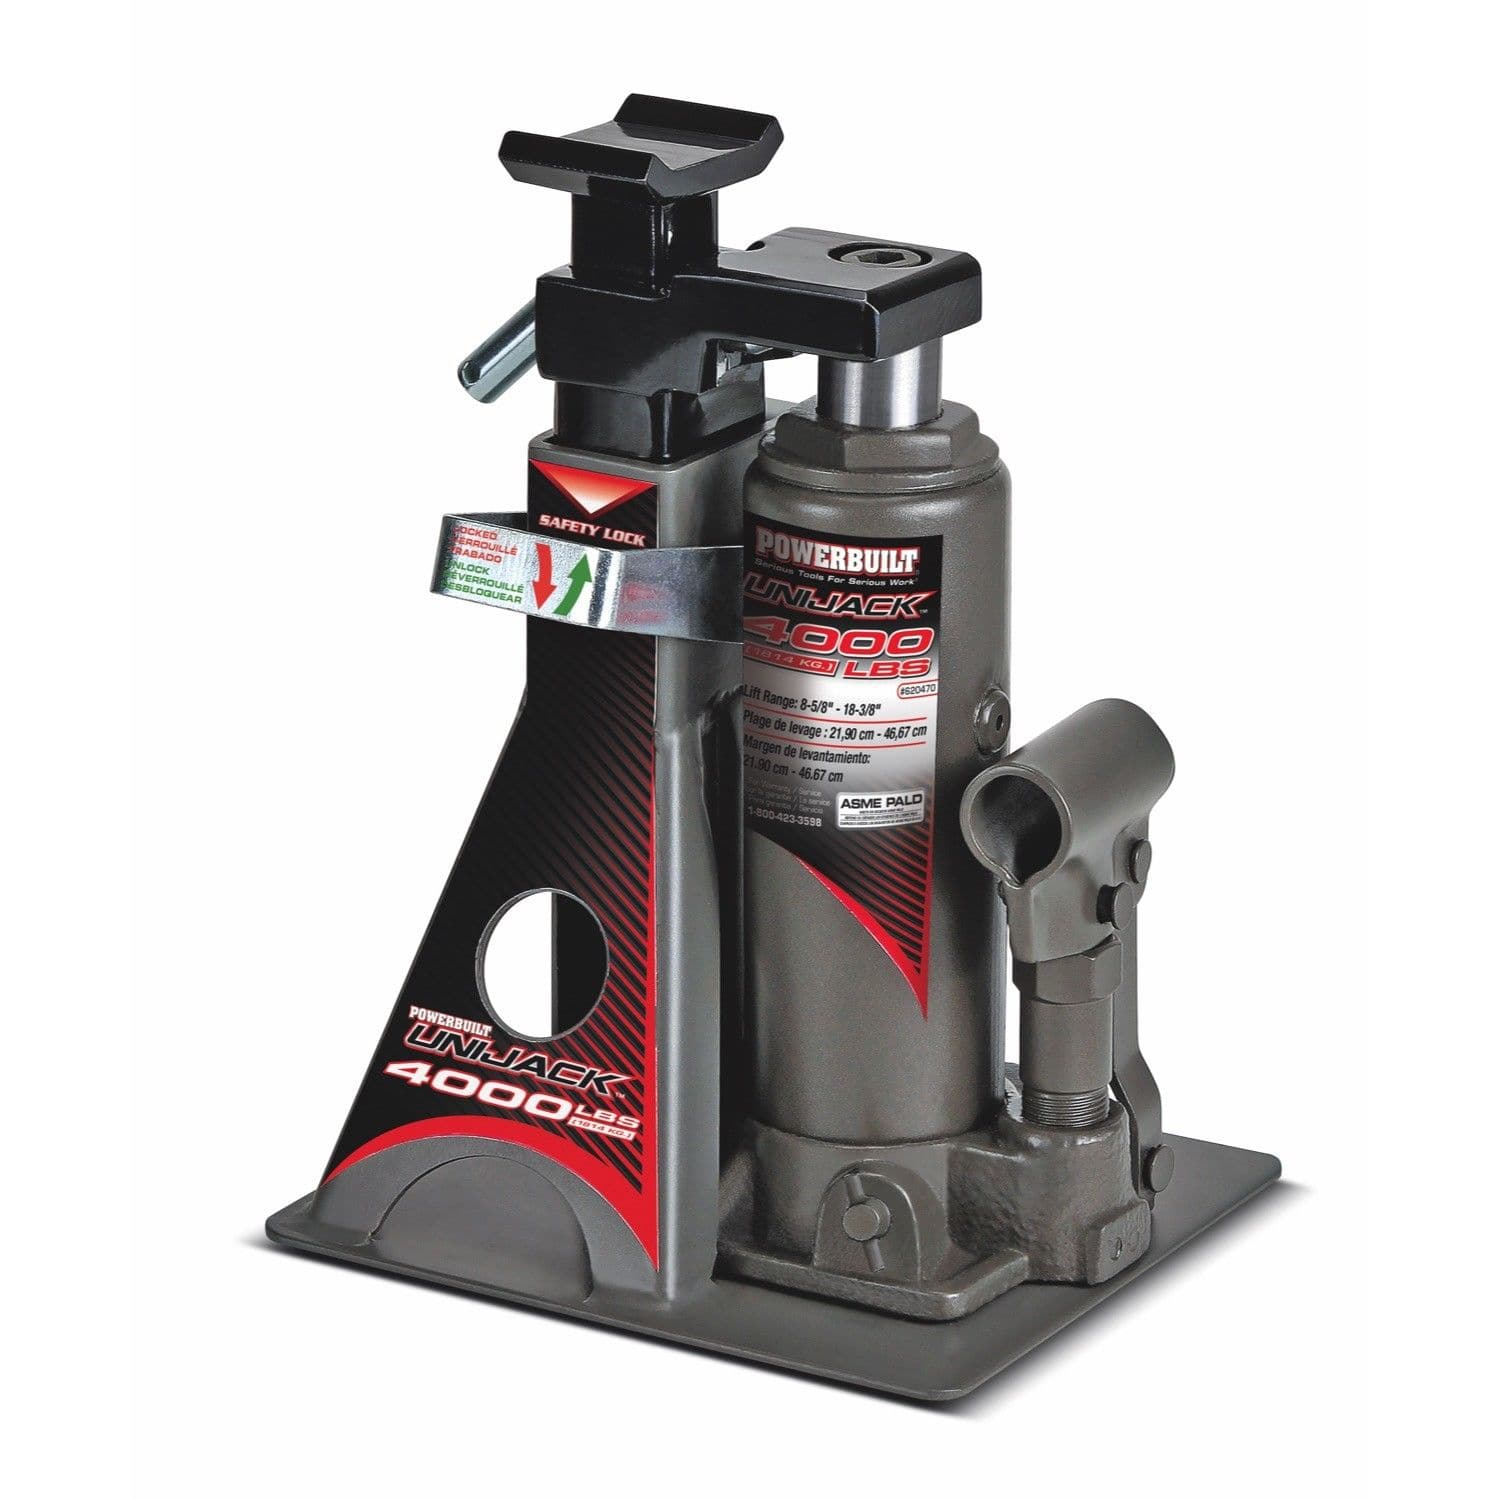 Powerbuilt 2 Ton (4000 lbs) UniJack Bottle Jack and Jack Stand All In One - 620470 $32.75